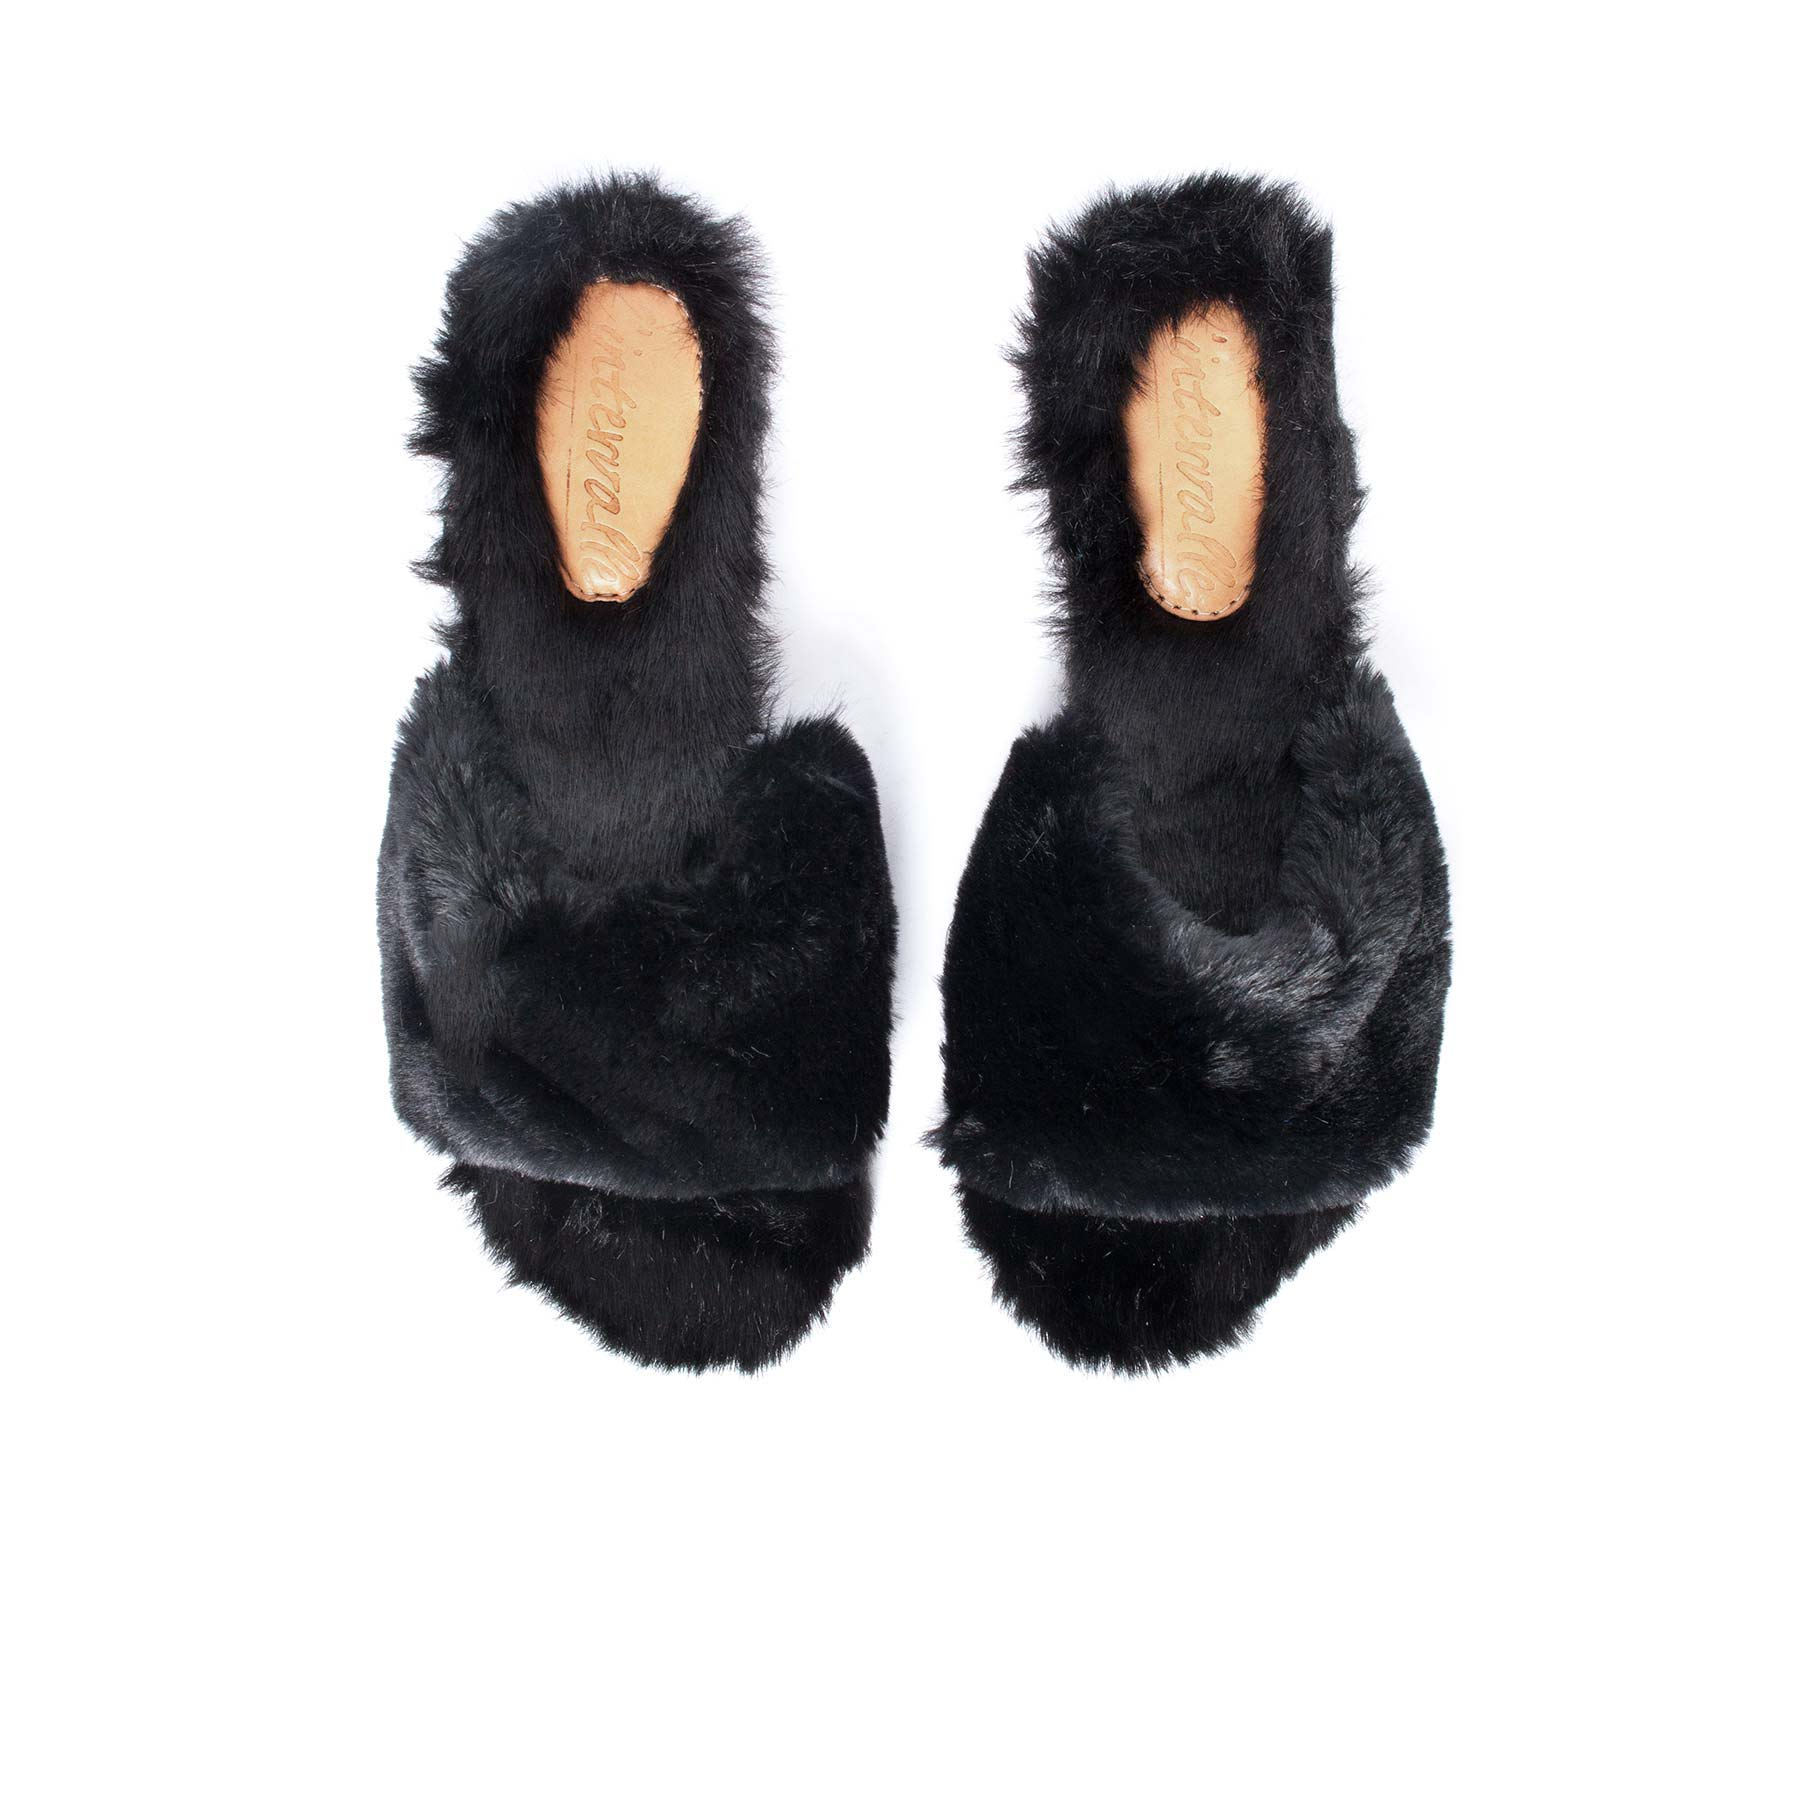 Sales, Eva Black Fur - Lintervalle shoes for woman